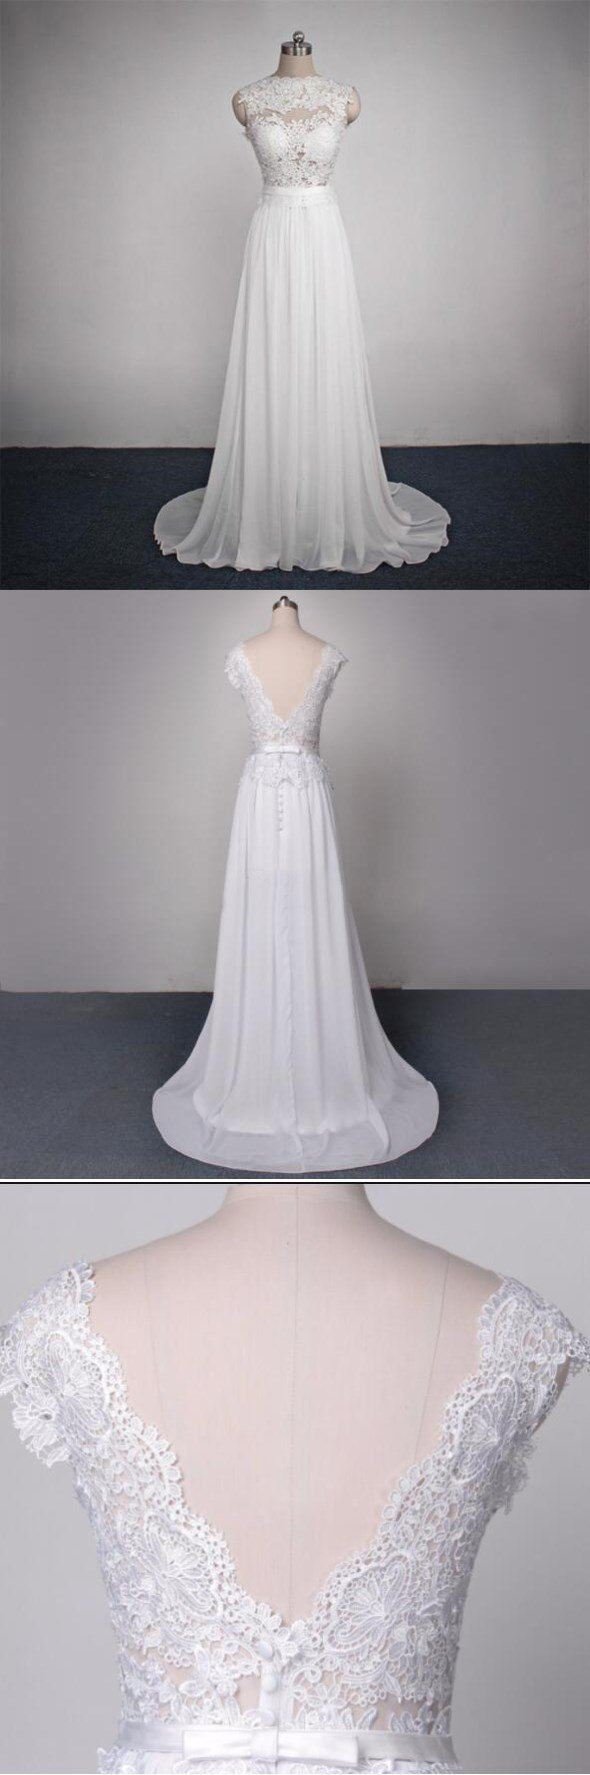 Long Lace Chiffon Elegant Pretty Most Popular Custom Handmade Wedding Dress, WD0091